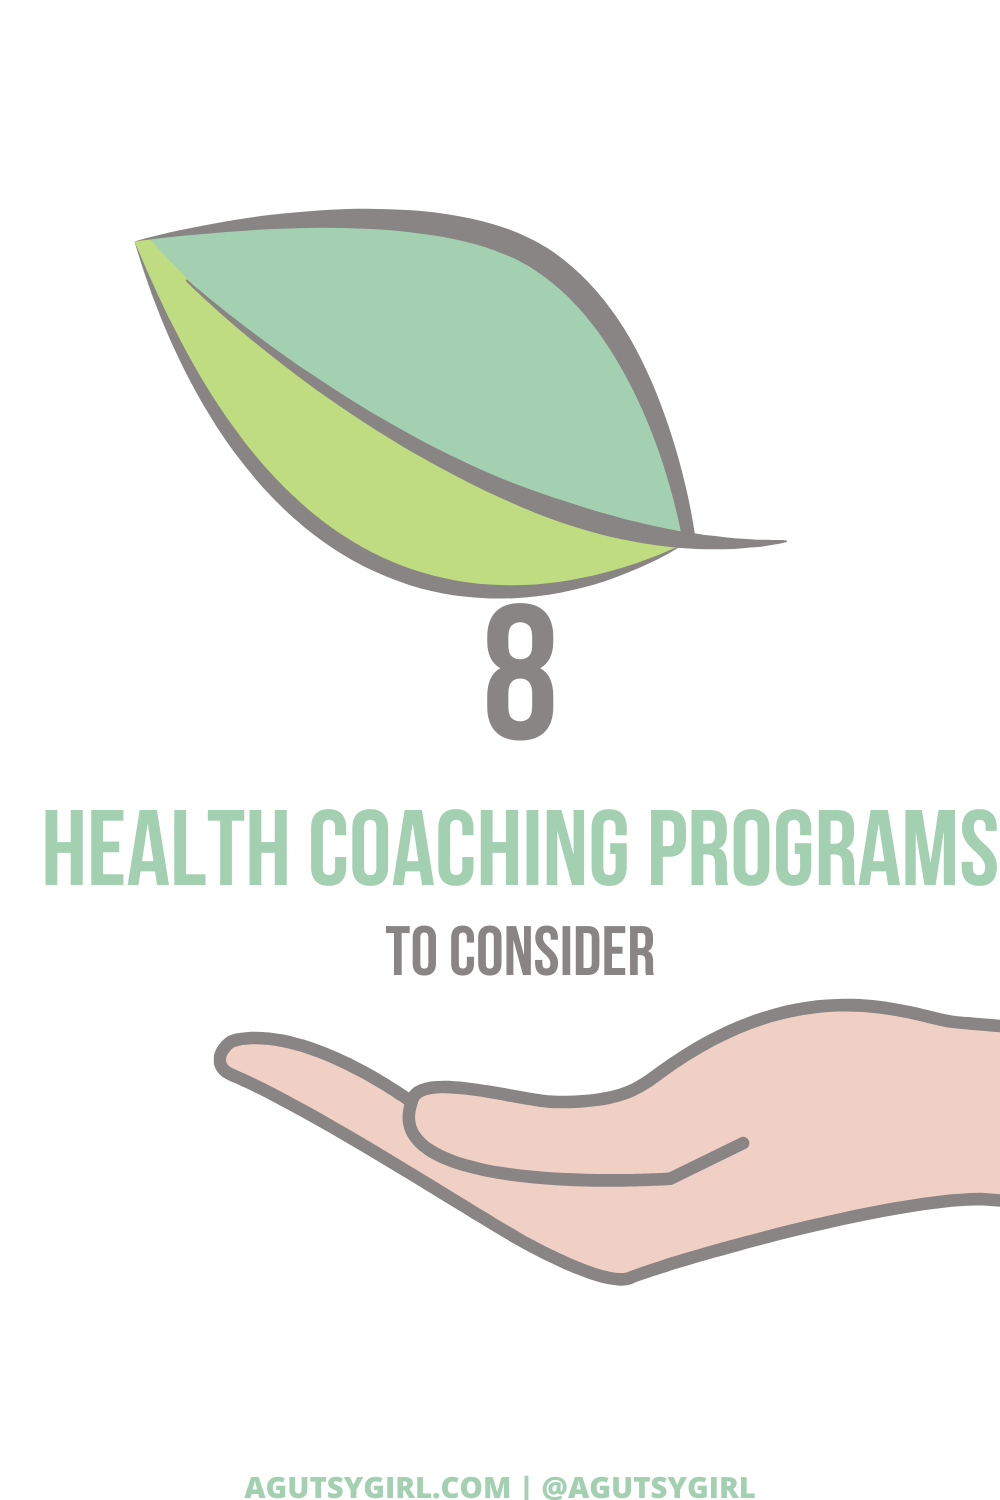 Health Coaching Programs to Consider agutsygirl.com #healthcoach #healthcoaching #IIN